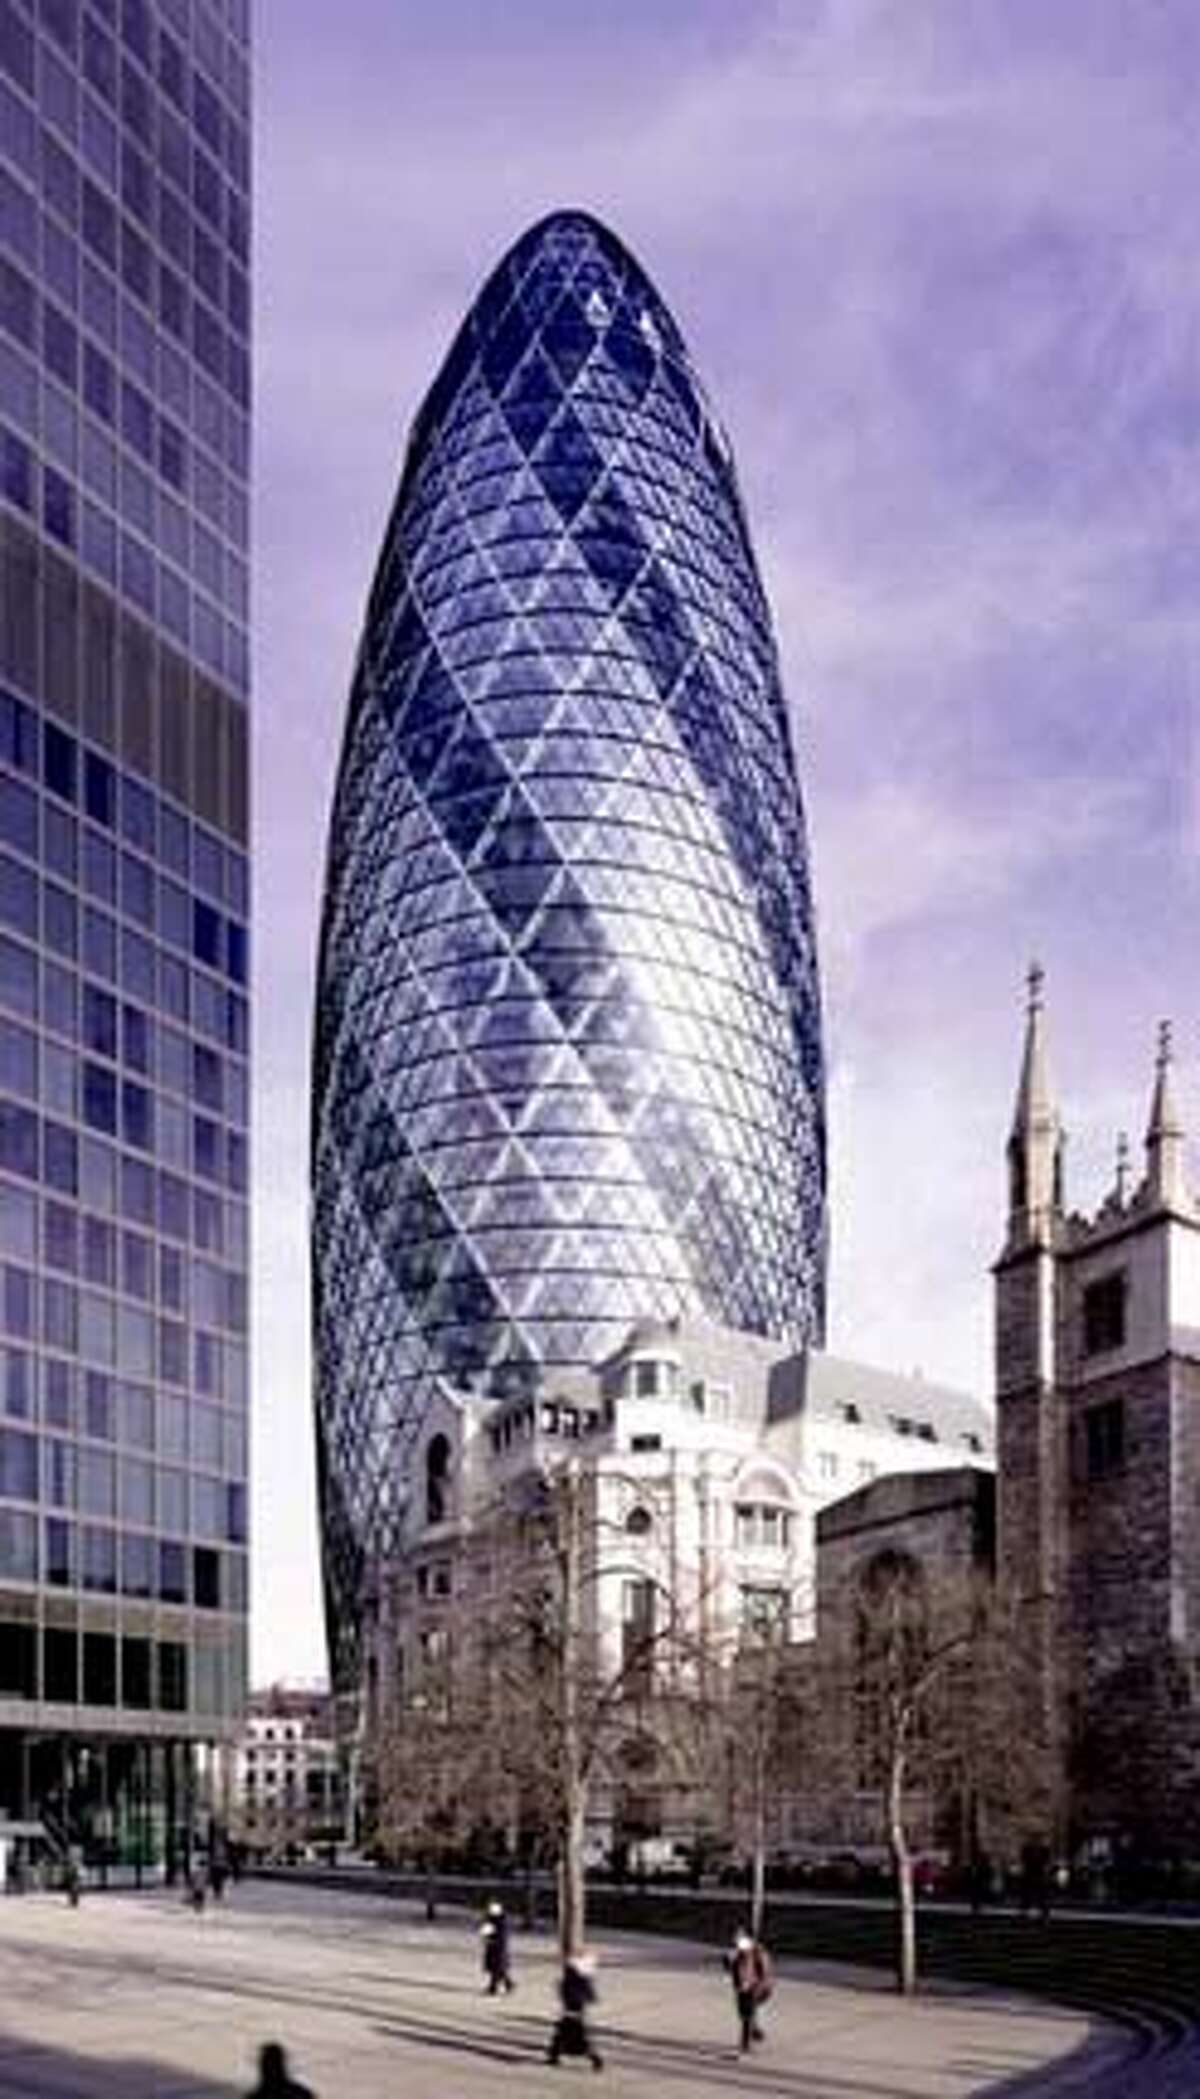 30 St Mary Axe. London. This site was formerly occupied by the Baltic Exchange, an historic building which was heavily damaged by an IRA bomb several years ago. Before 30 St Mary Axe was proposed, the London Millennium Tower was proposed and rejected for the same site. The building's shape has earned it numerous nicknames in the British press, including 'erotic gherkin' and 'towering innuendo'. The floor plan is rotated for each successive floor, creating a series of spiraling atria that stretch the full height of the building. HANDOUT.